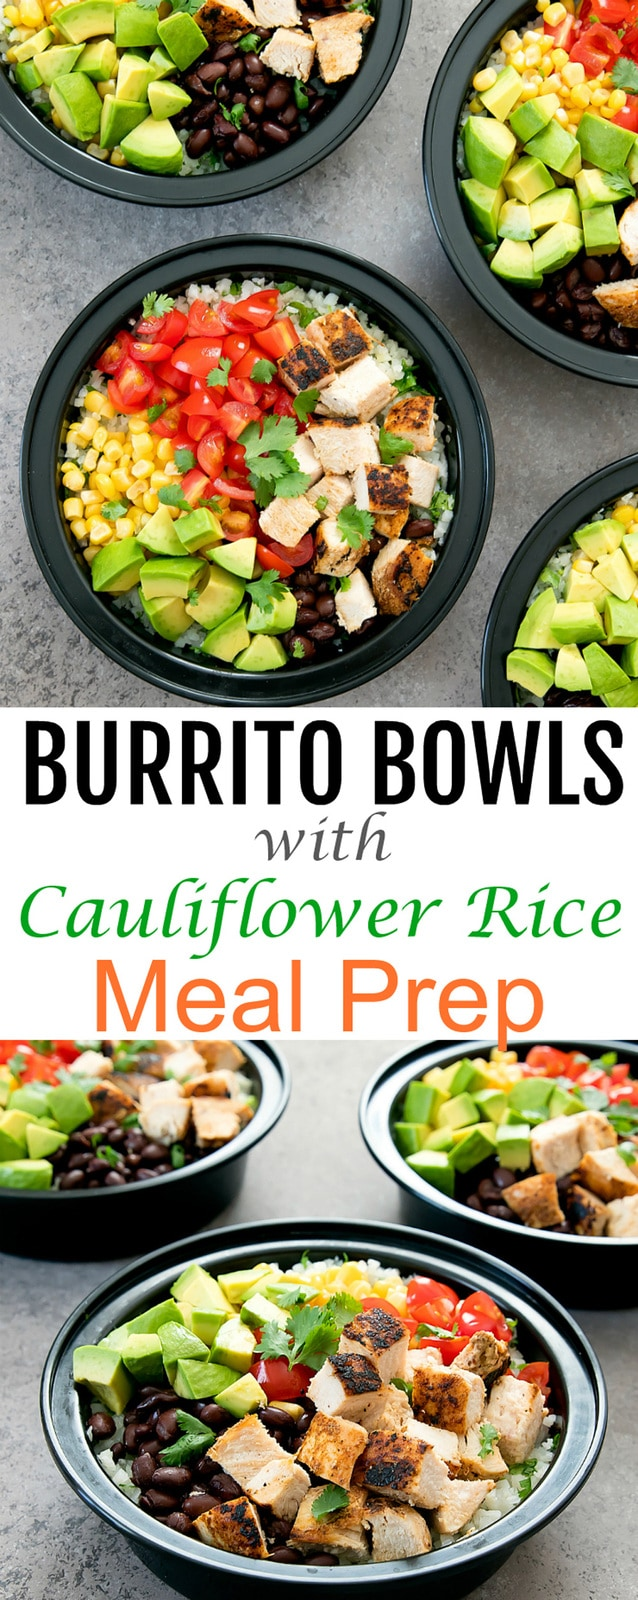 Chicken Burrito Bowls with Cilantro Lime Cauliflower Rice. These burrito bowls are easy, flavorful, and are perfect for your weekly meal prep. #burritobowl #mealprep #cauliflower